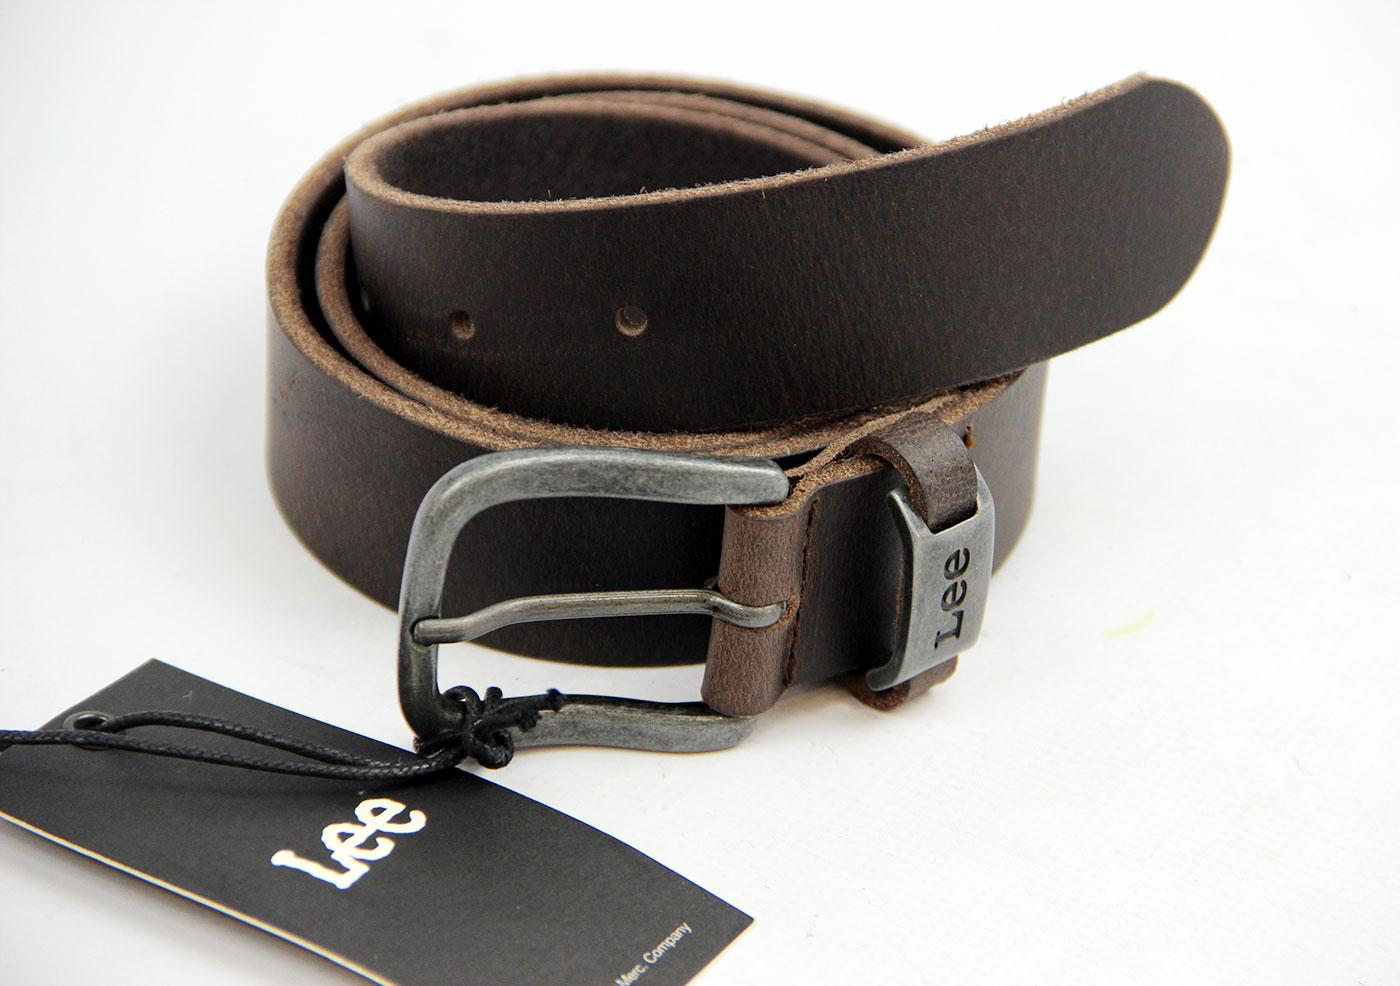 Lee Jeans Retro Indie Mod Full Grain Leather Vintage Belt